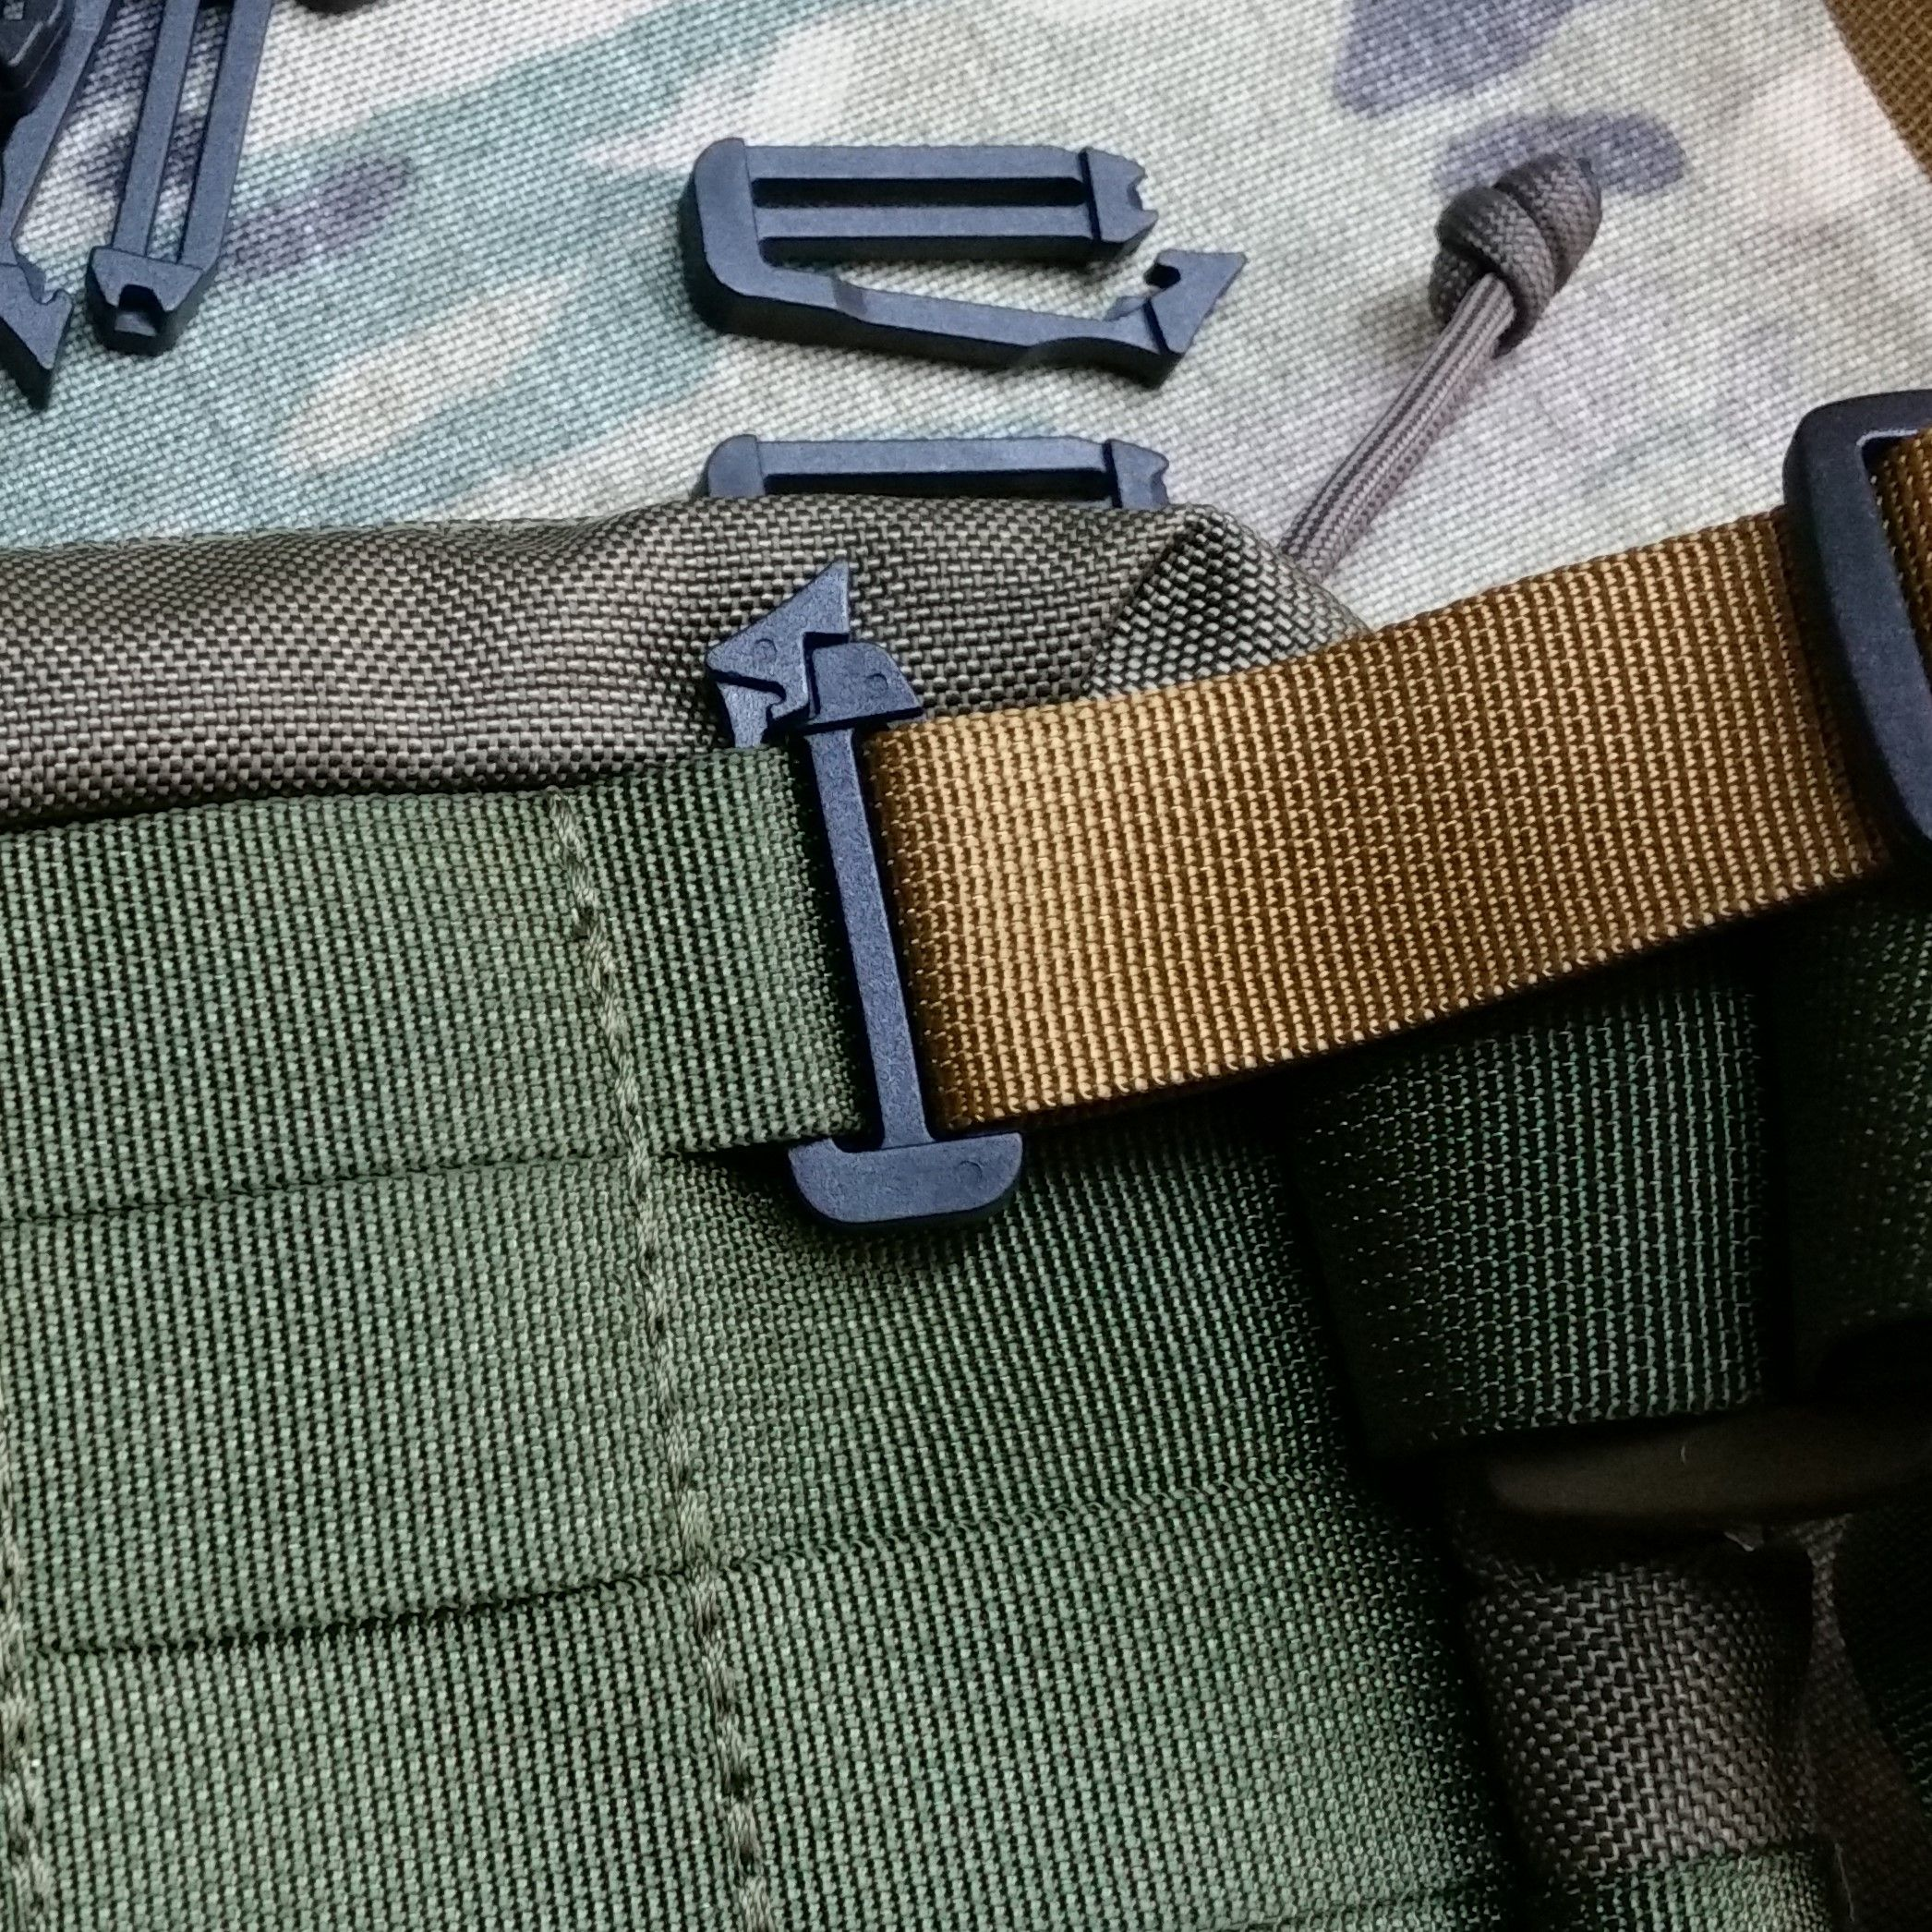 Clips for attaching to MOLLE webbing +8pln